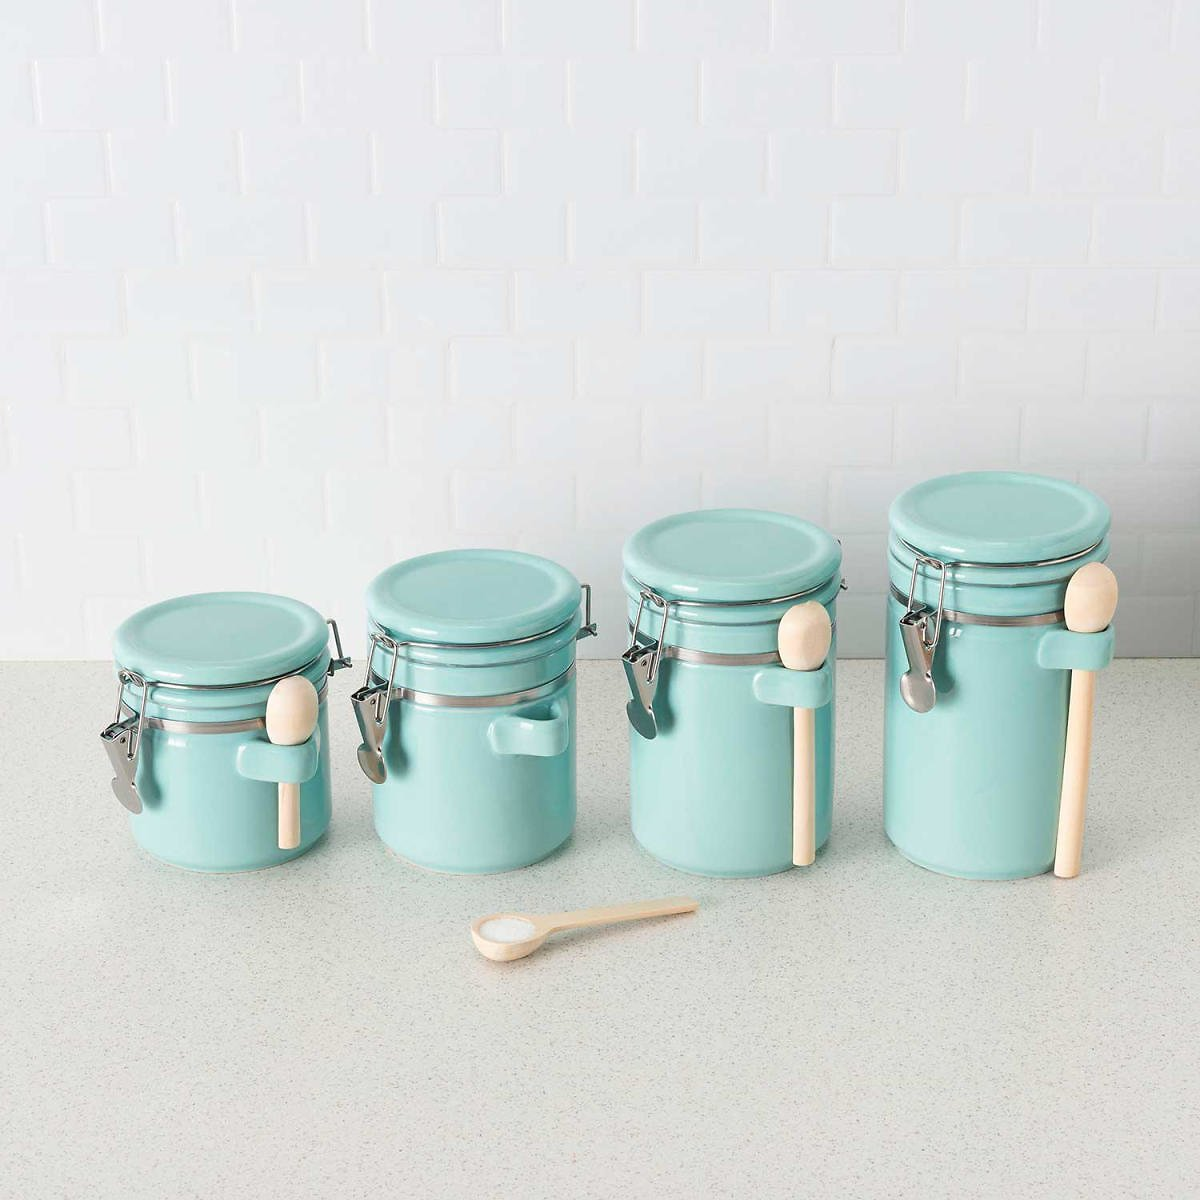 Ceramic Canisters with Air-Tight Clamp-Top Lids and Wooden Spoons, 4-Piece Set (Assorted Colors) - Sam's Club